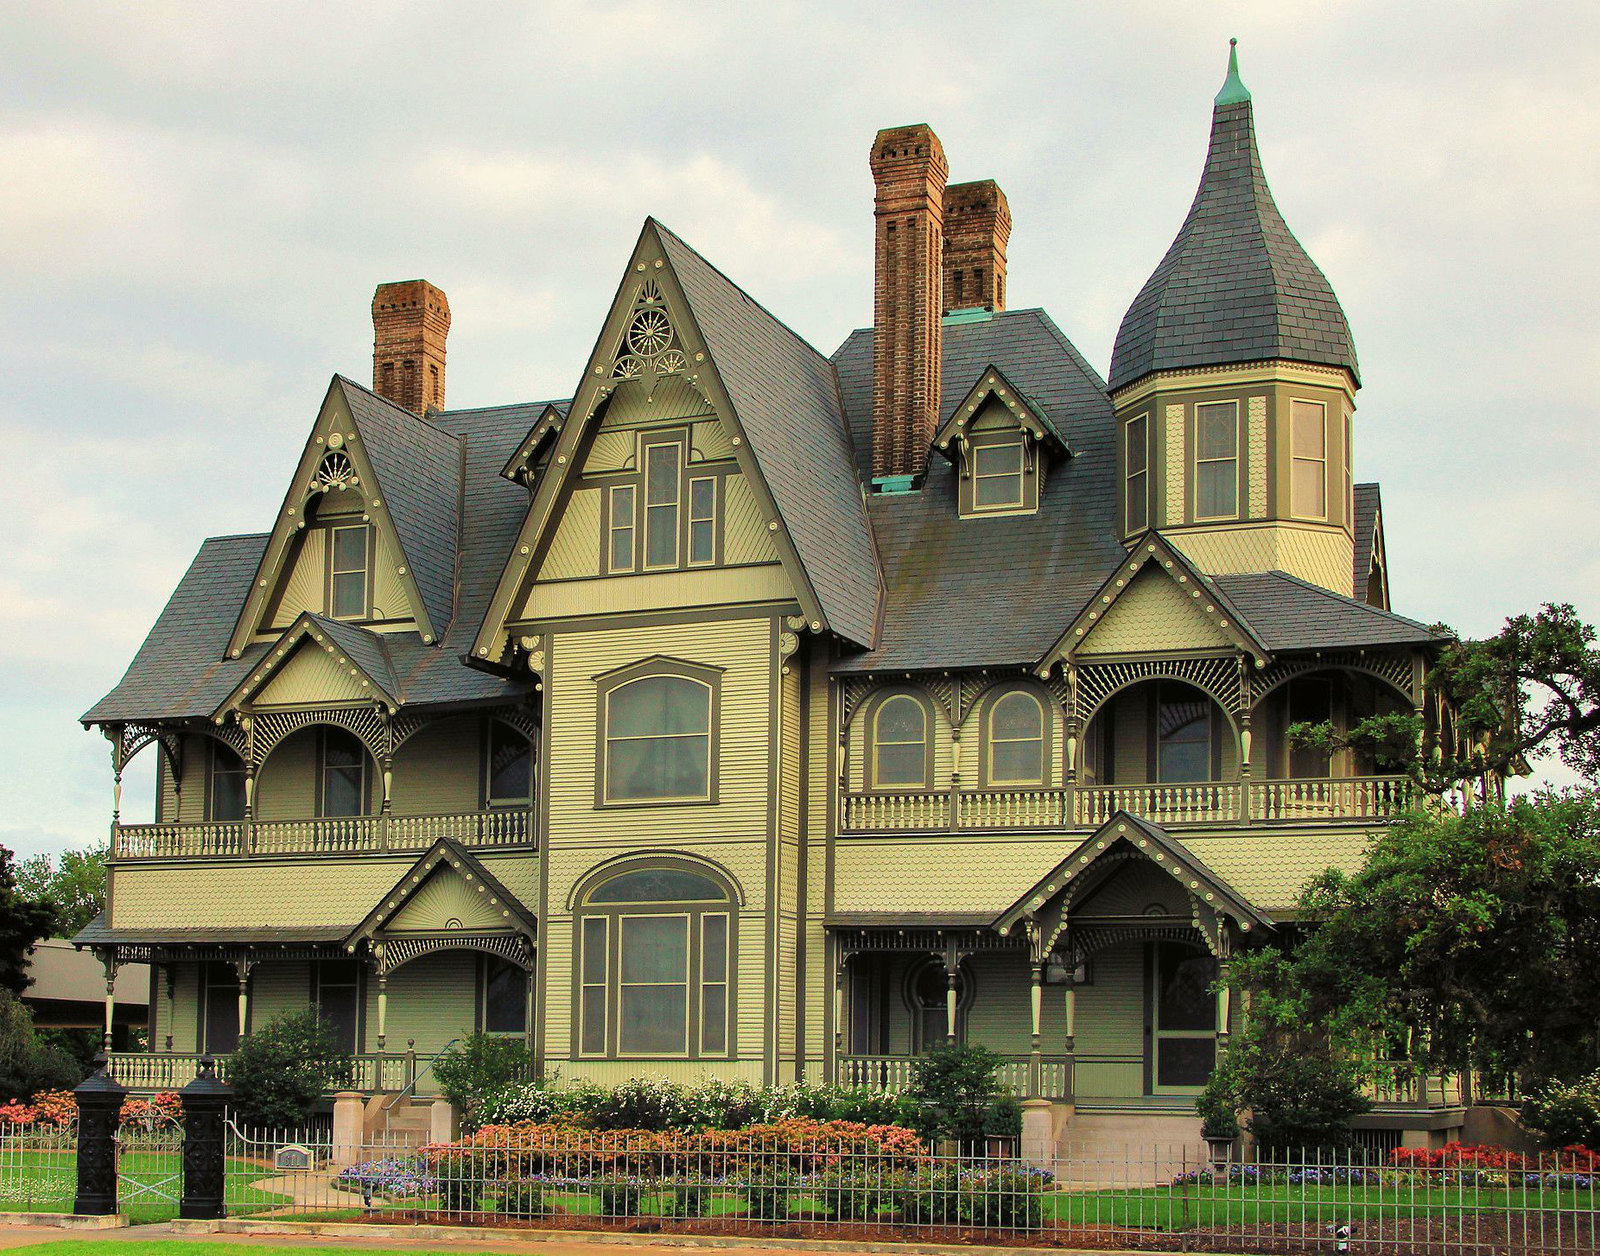 W. H. Stark House, Orange, Texas. Credit Larry D. Moore